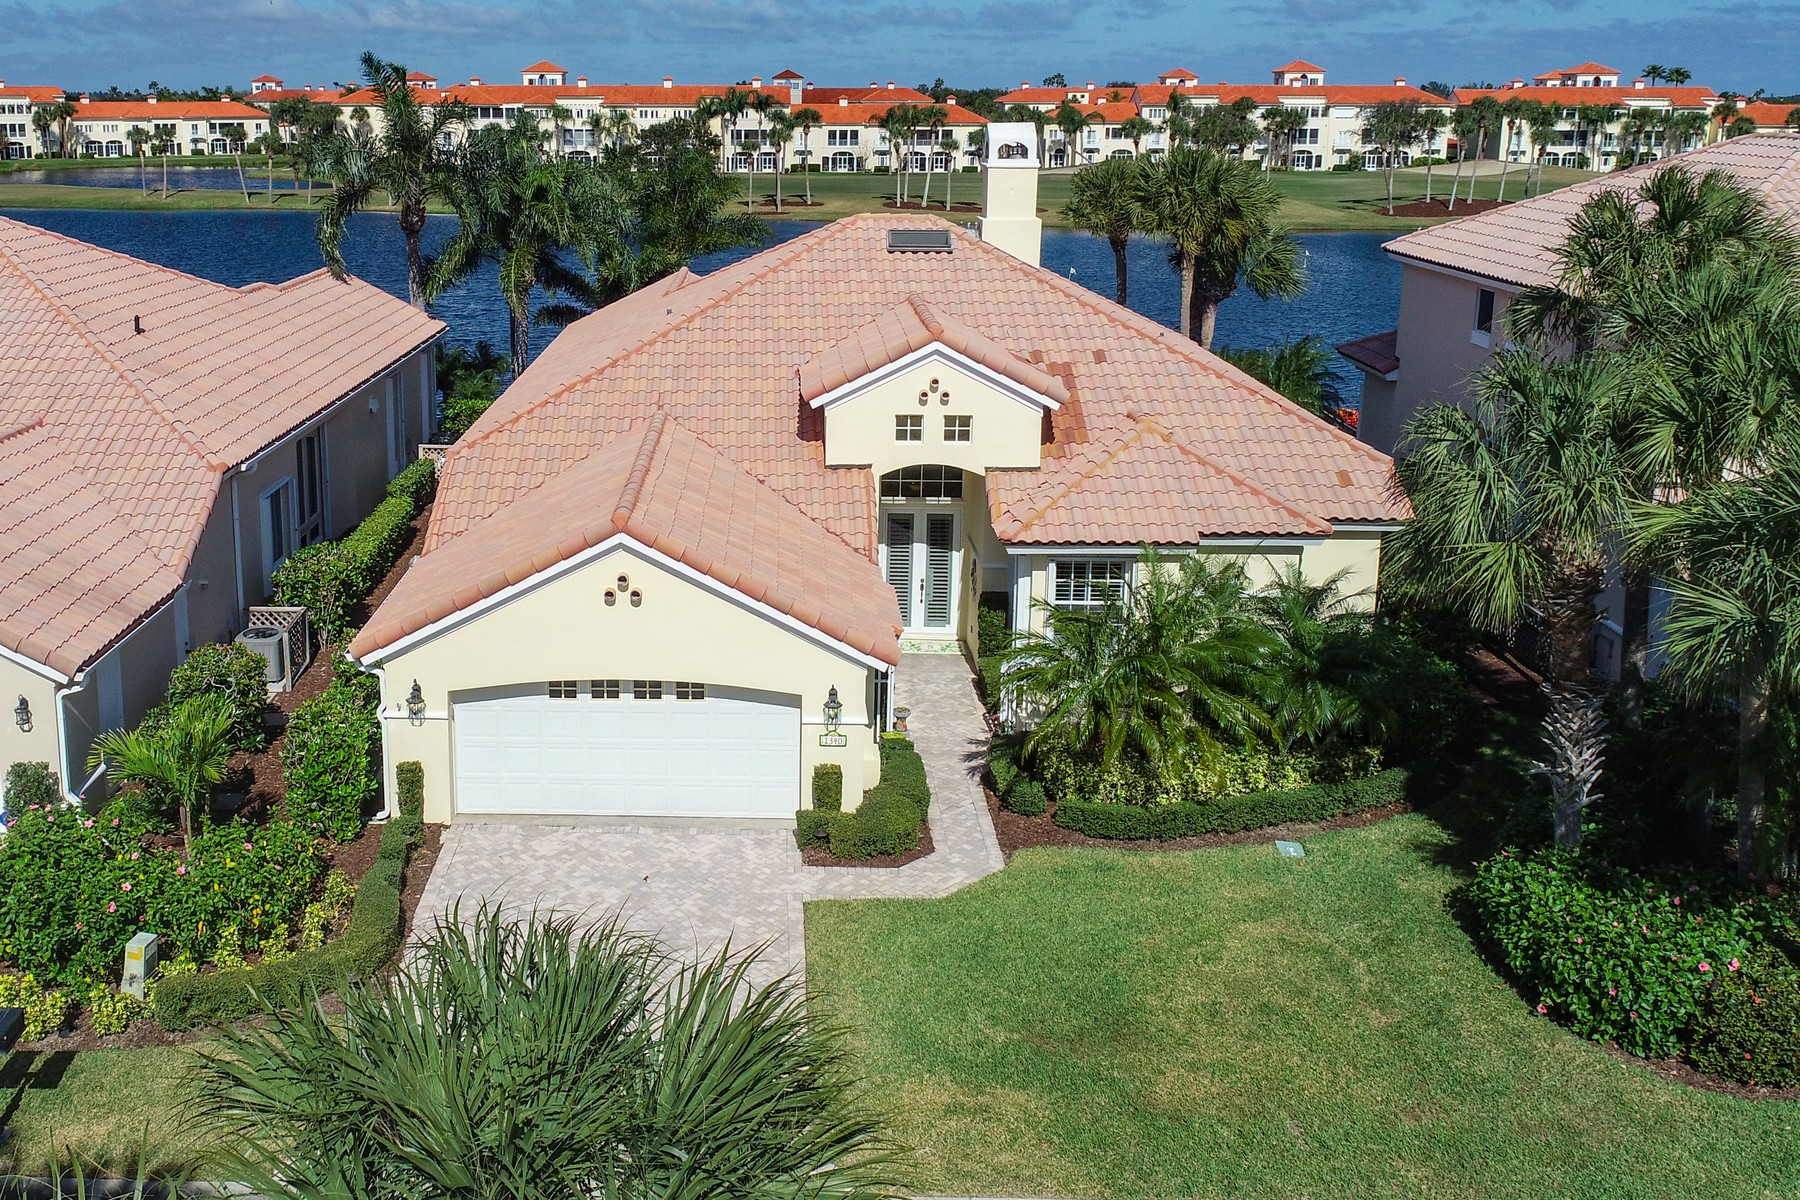 Property for Sale at Picture Perfect Lakefront home with Golf Course Views 1340 Coventry Ln Vero Beach, Florida 32967 United States